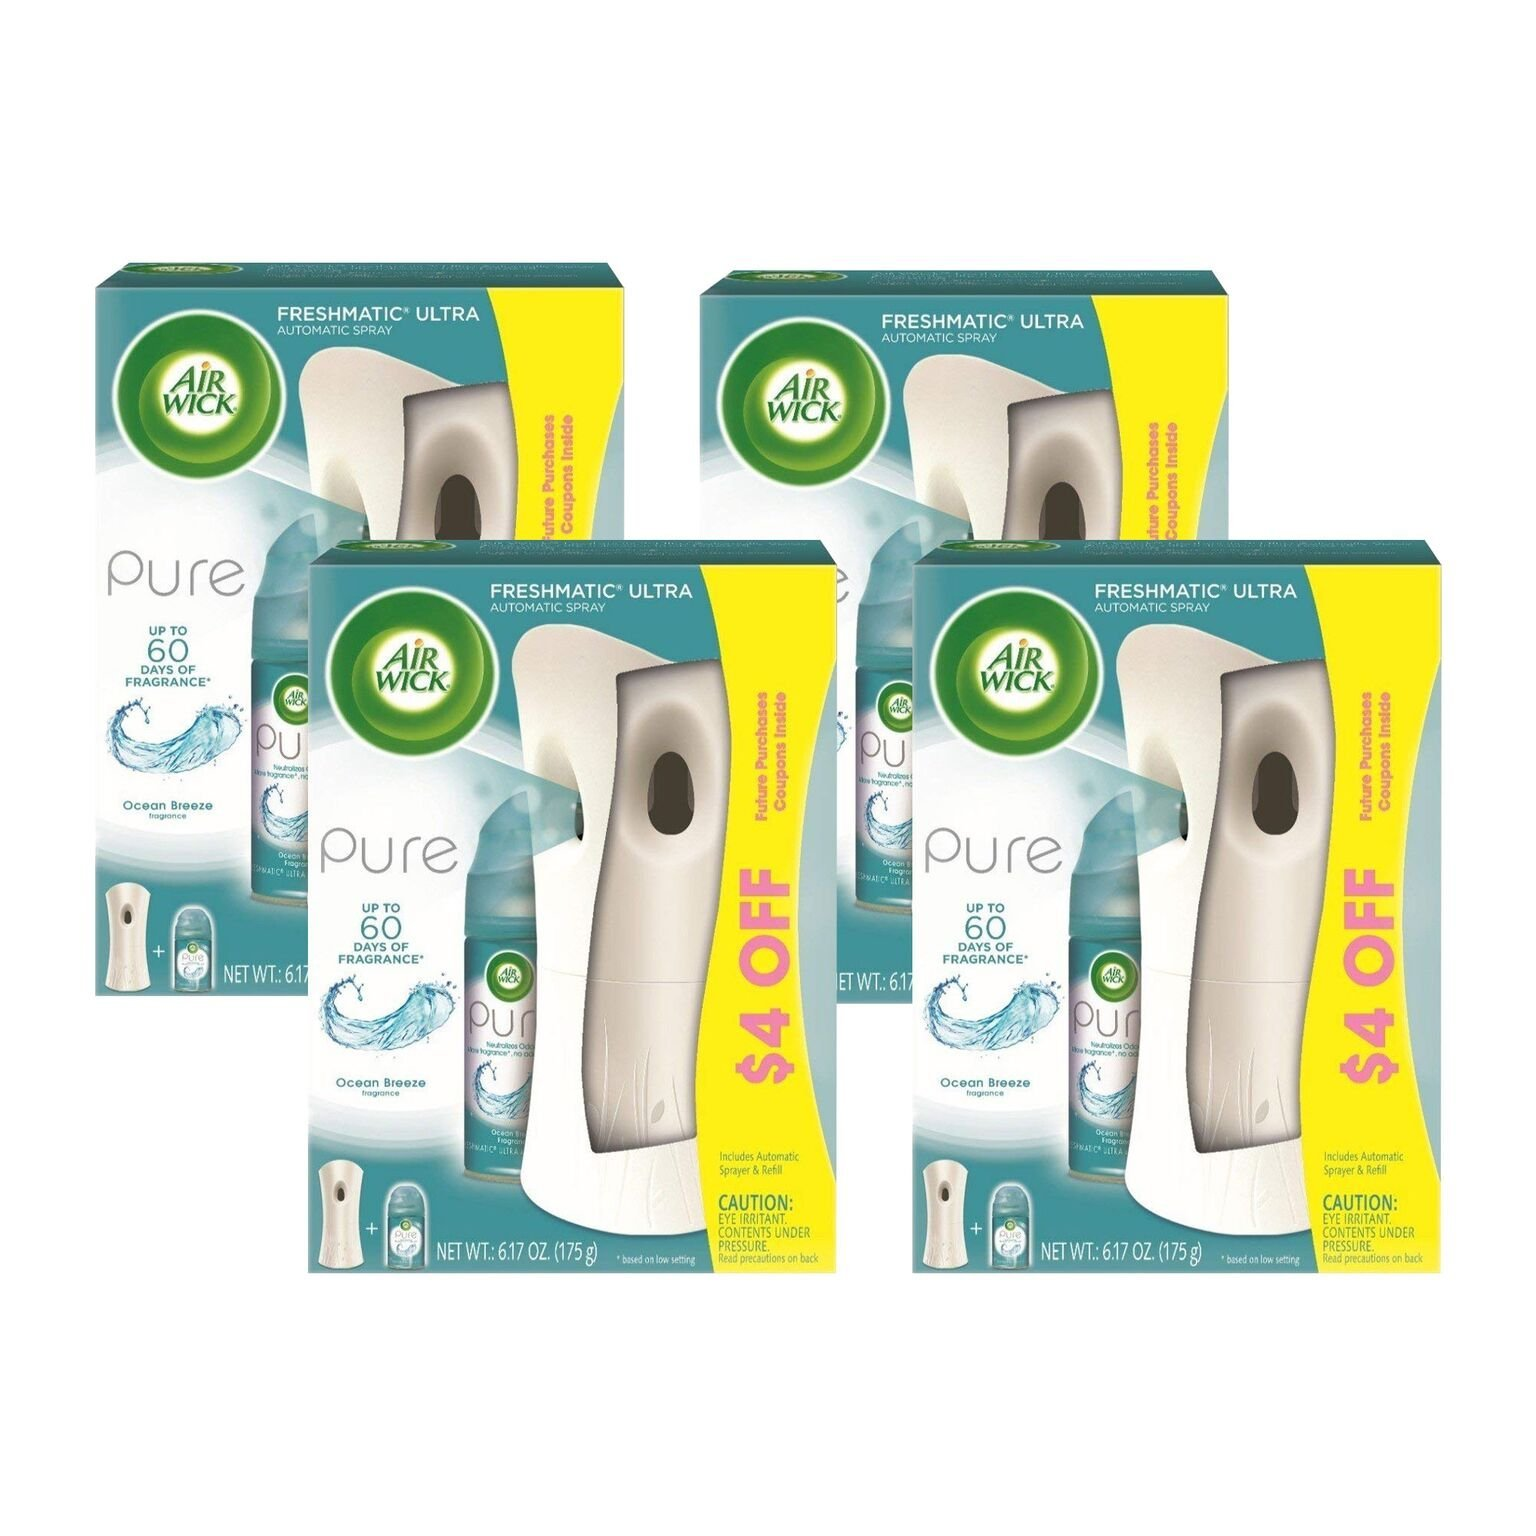 Air Wick FRESHMATIC Ultra, Starter Kit, Pure Ocean Breeze 1 ea (Pack of 4) by Air Wick (Image #1)